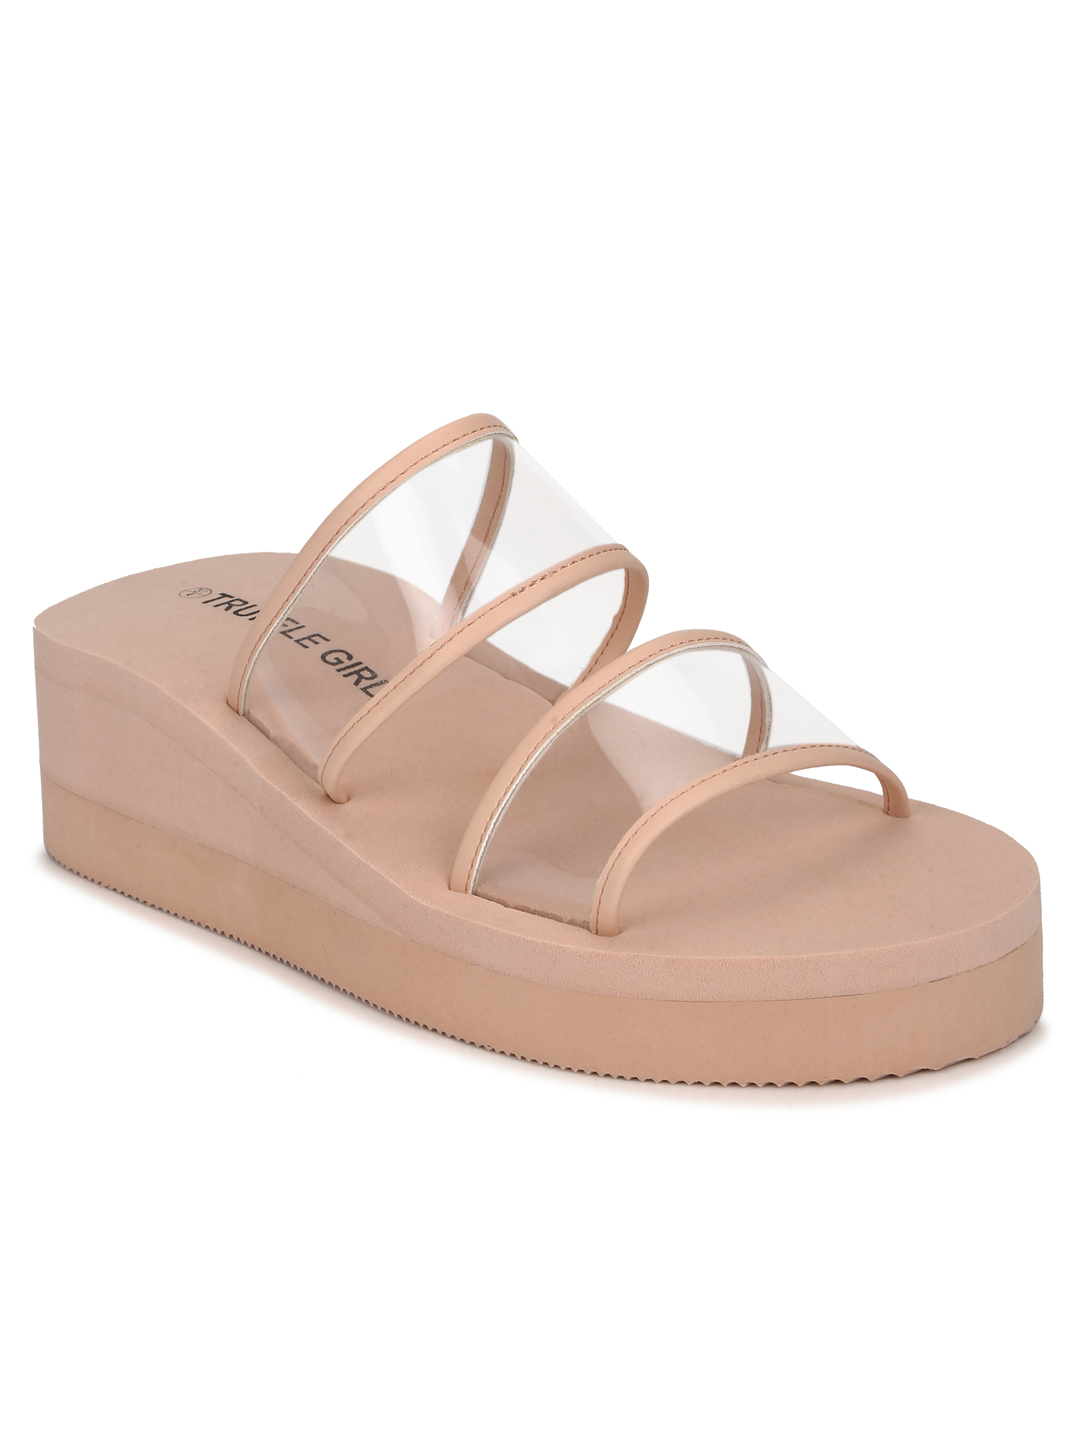 Truffle Collection   Beige PVC Wedges With Wide Clear Straps